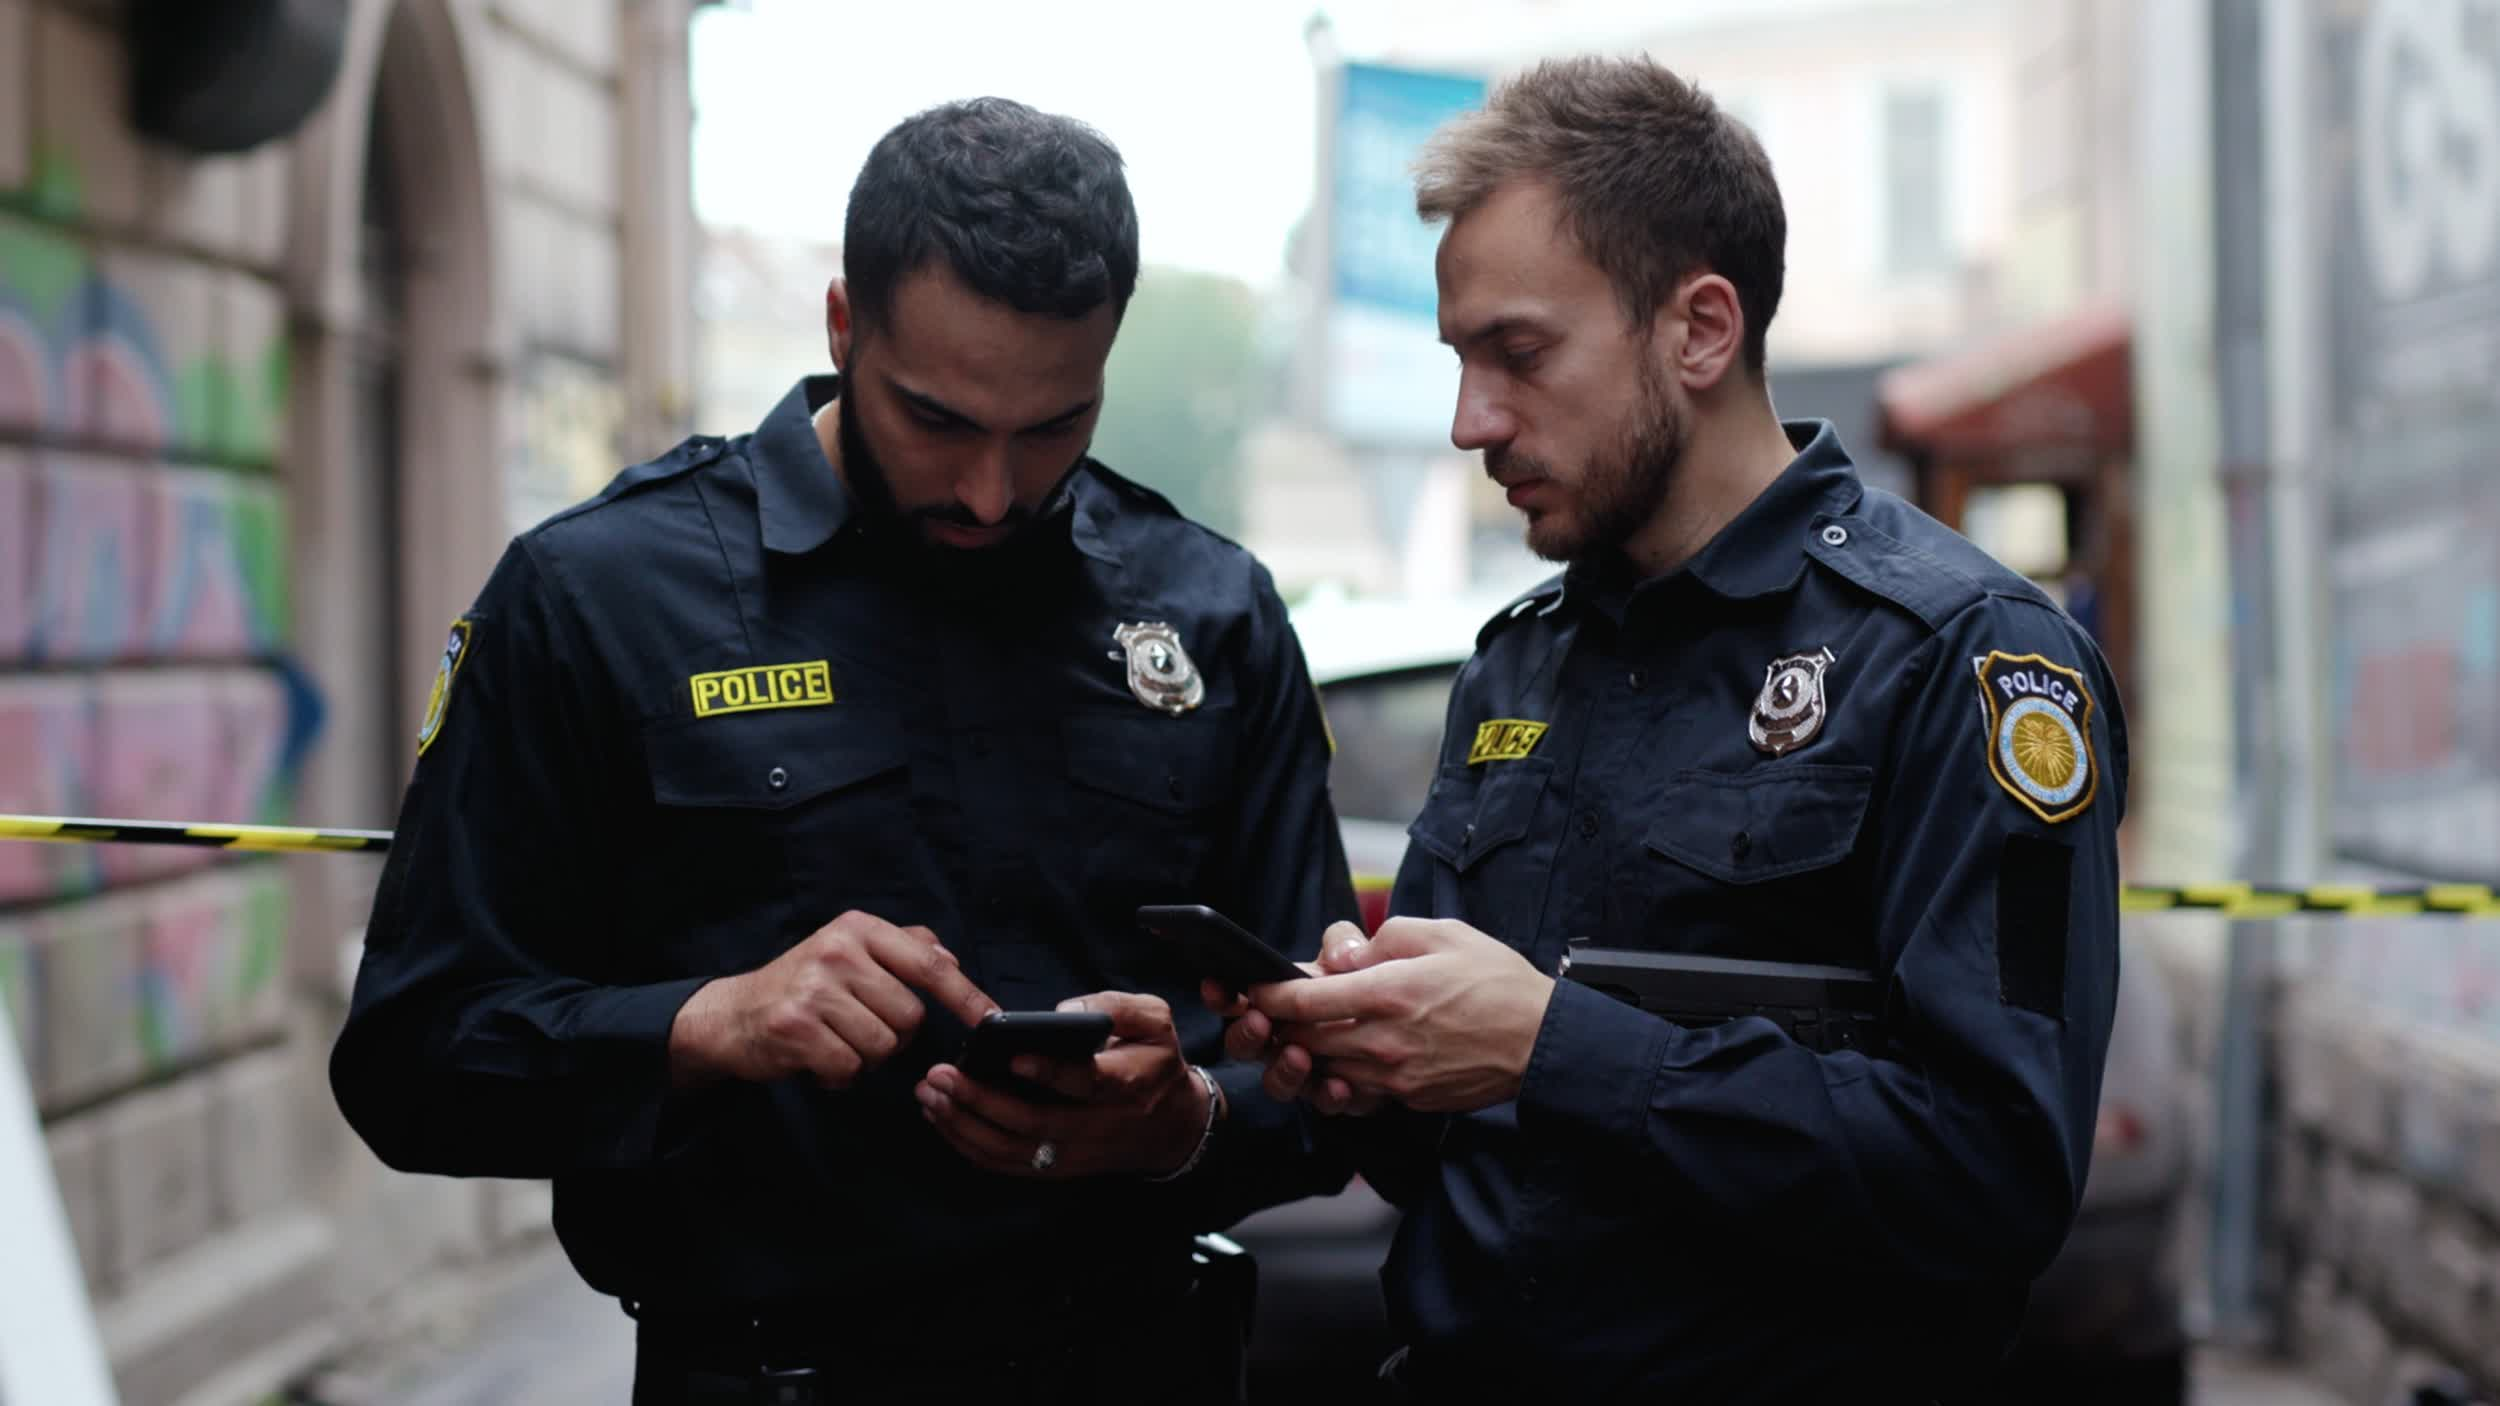 Law enforcement agencies have powerful forensic tools to gather information from your phone